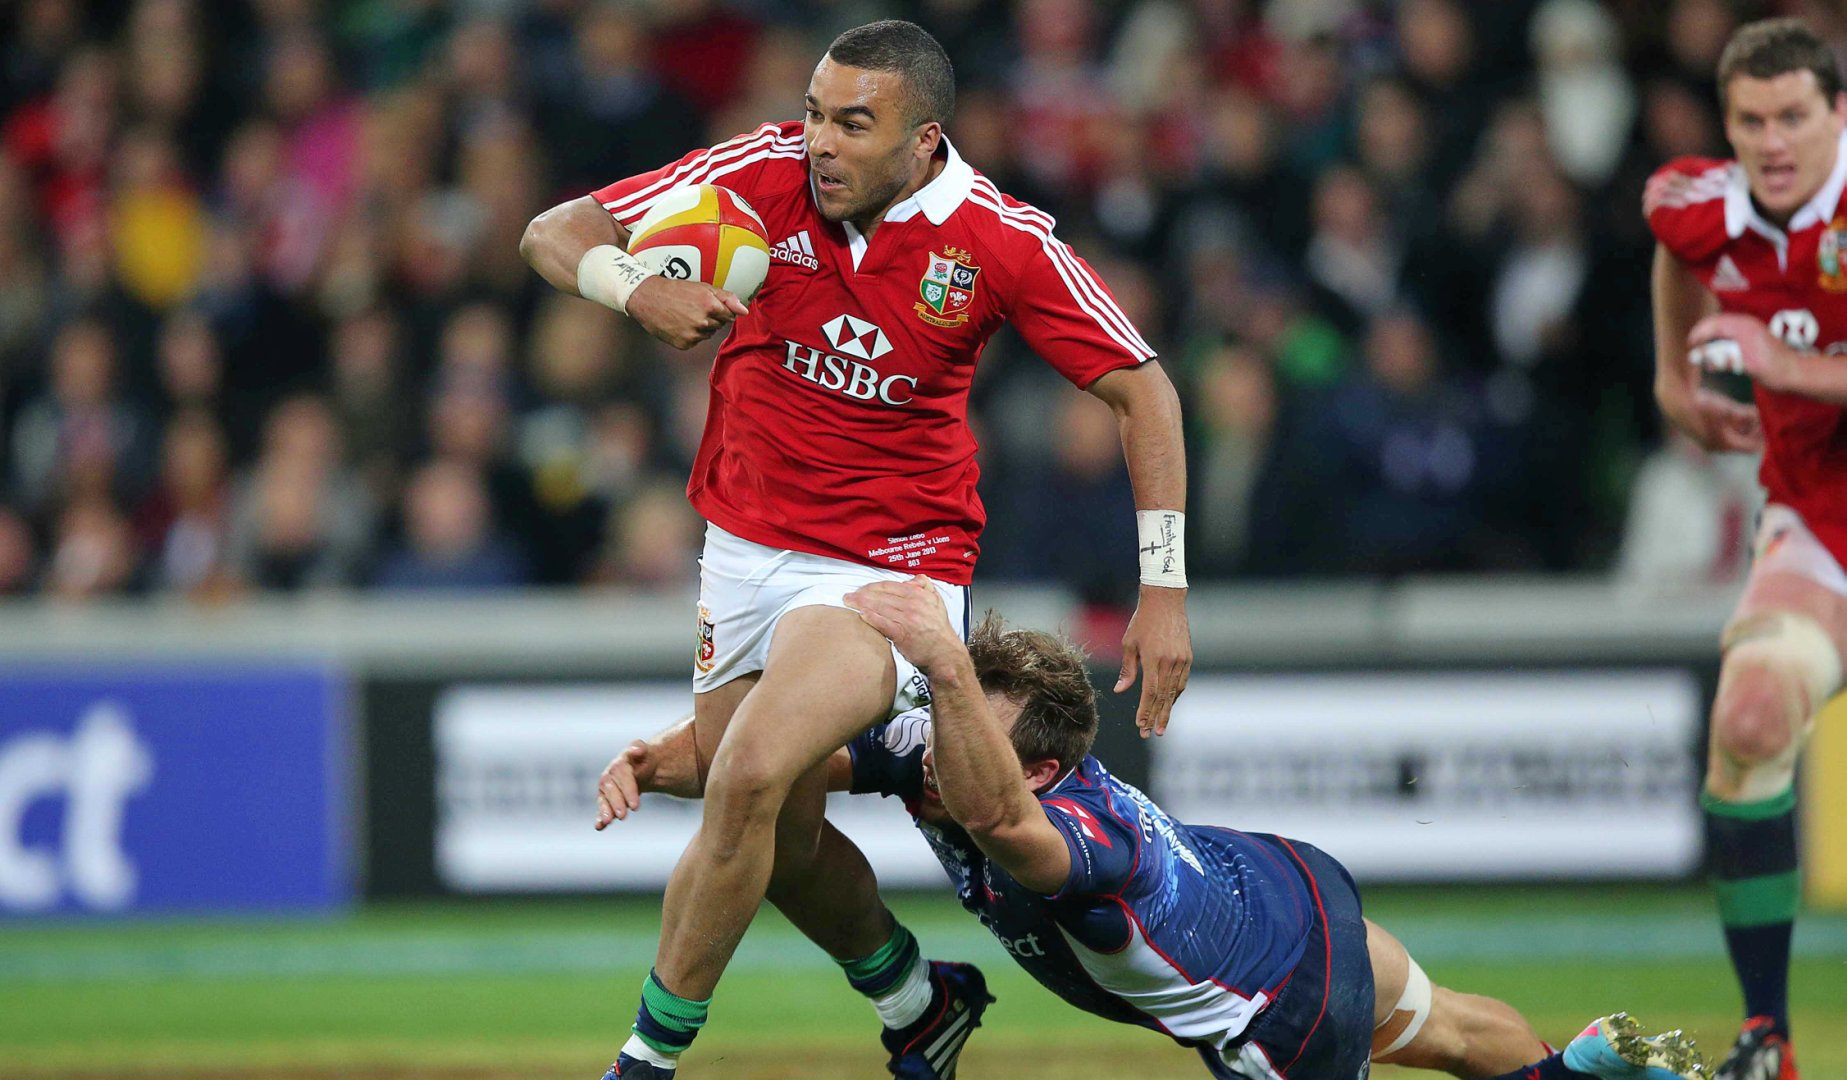 Zebo calls for heads up rugby